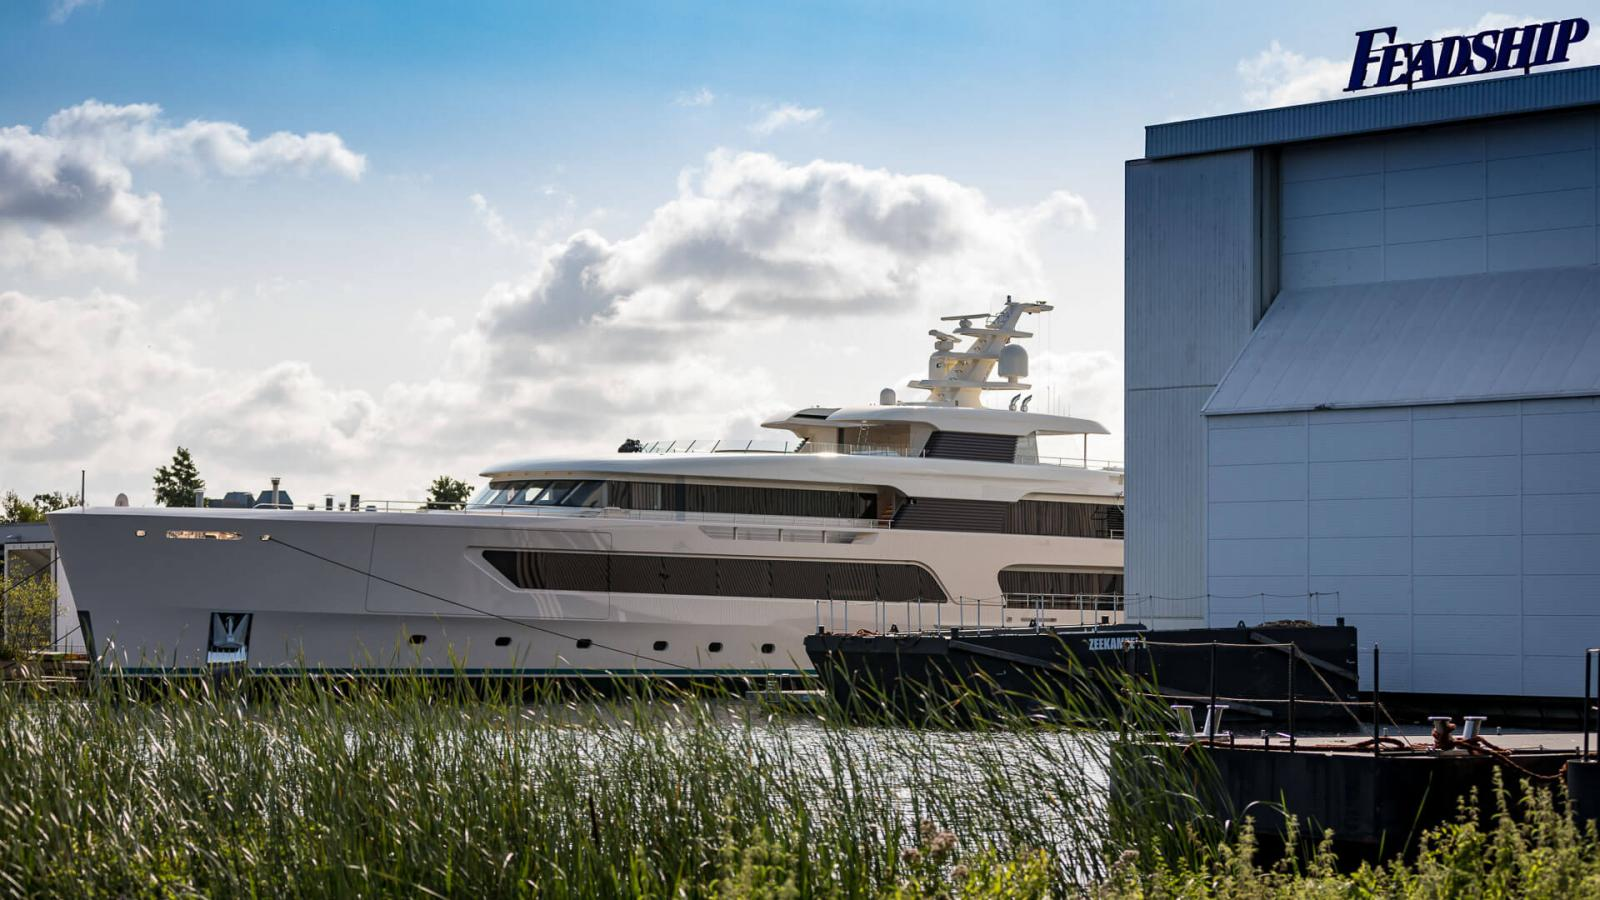 Feadship Hull 696 Superyacht Emerges